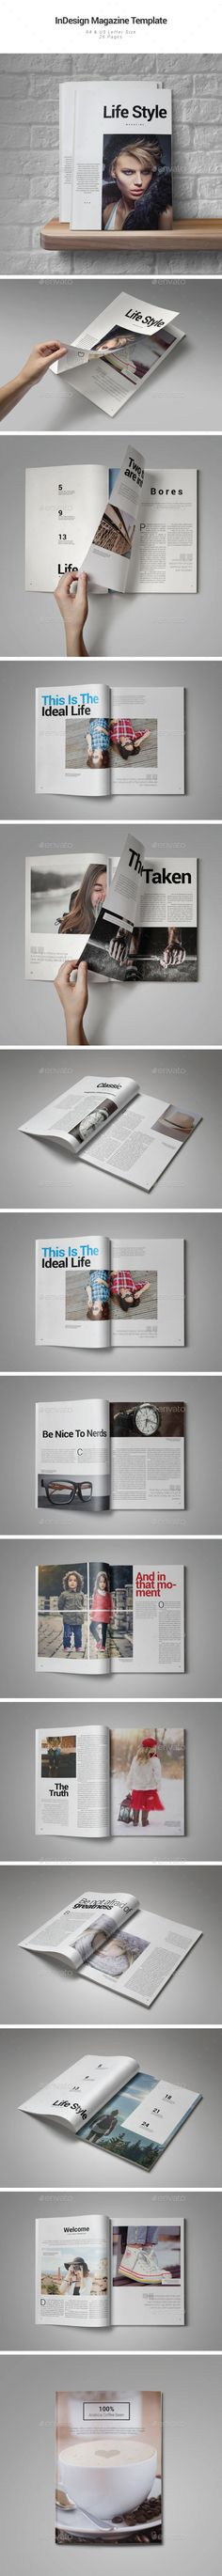 Life Style Magazine Template by Luckascode Life Style Magazine is a professional and clean InDesign magazine template that can be used for any type of industry. This item co